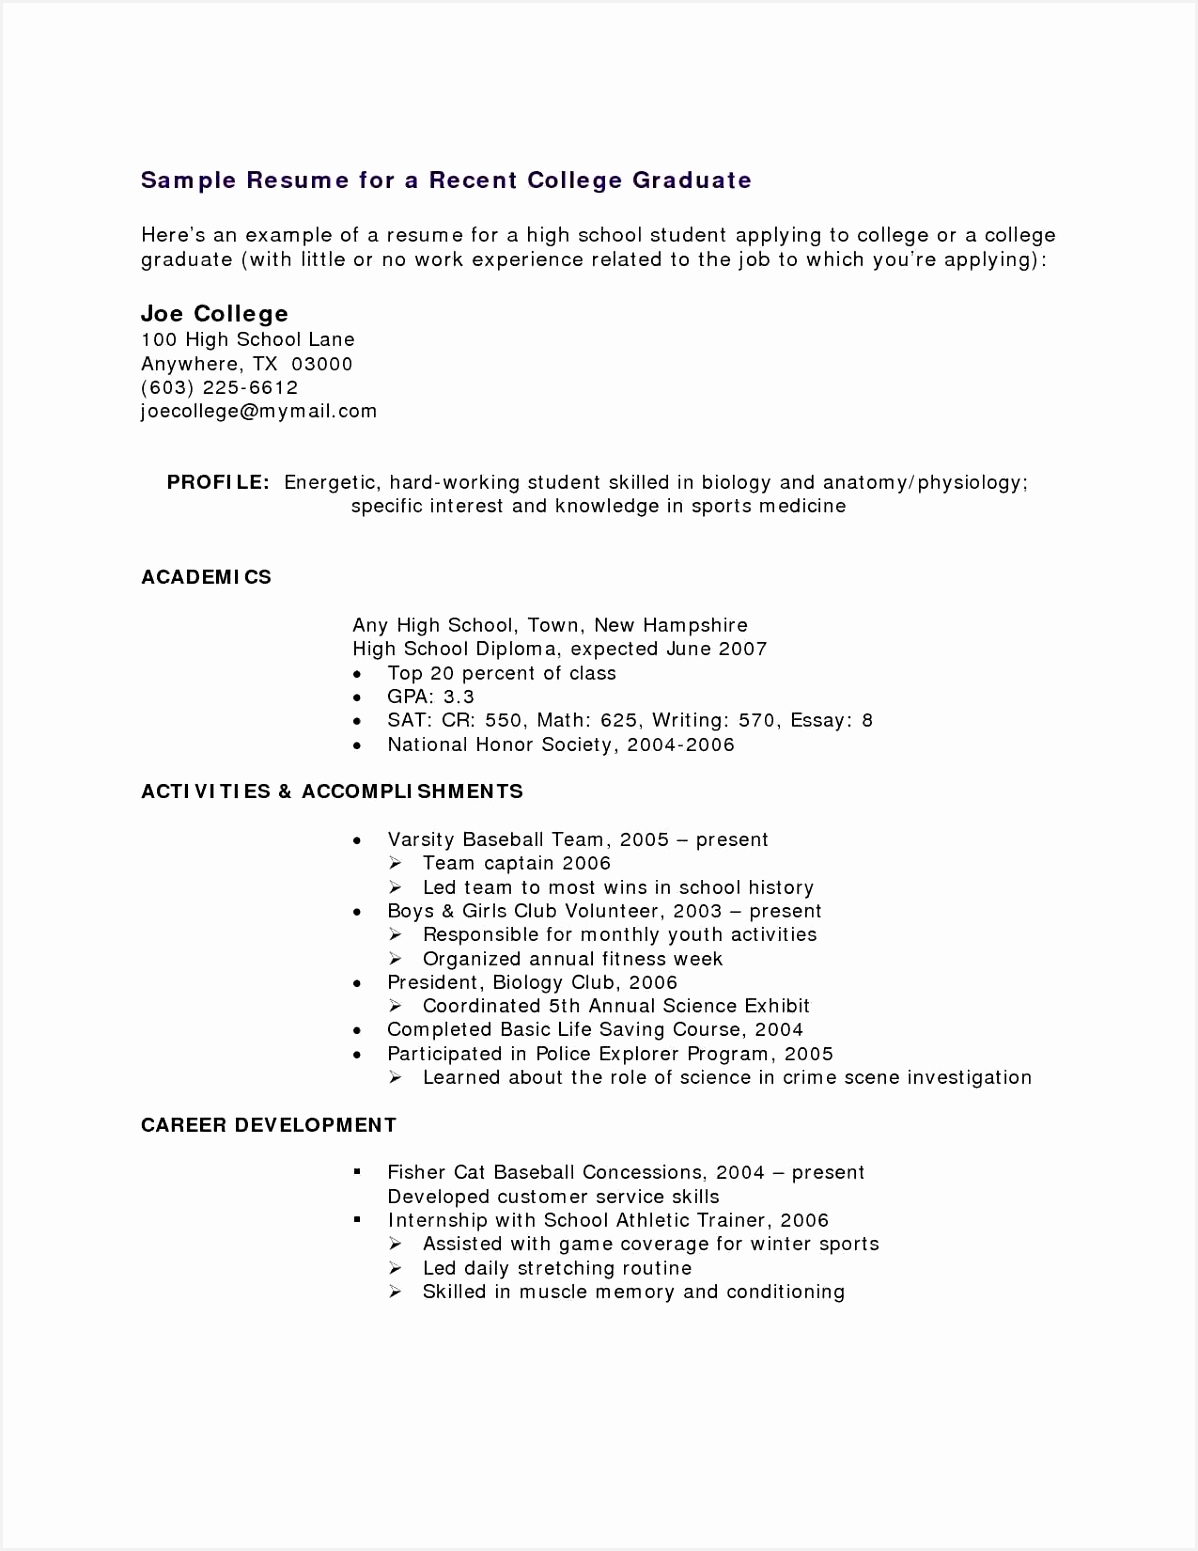 Resume Samples for Graduate School Gchle Inspirational Student Affairs Resume Samples Best Resume Examples for Jobs with Of Resume Samples for Graduate School Wrhgg Elegant Sample Resume for Graduate School – Sample Resume for Graduate